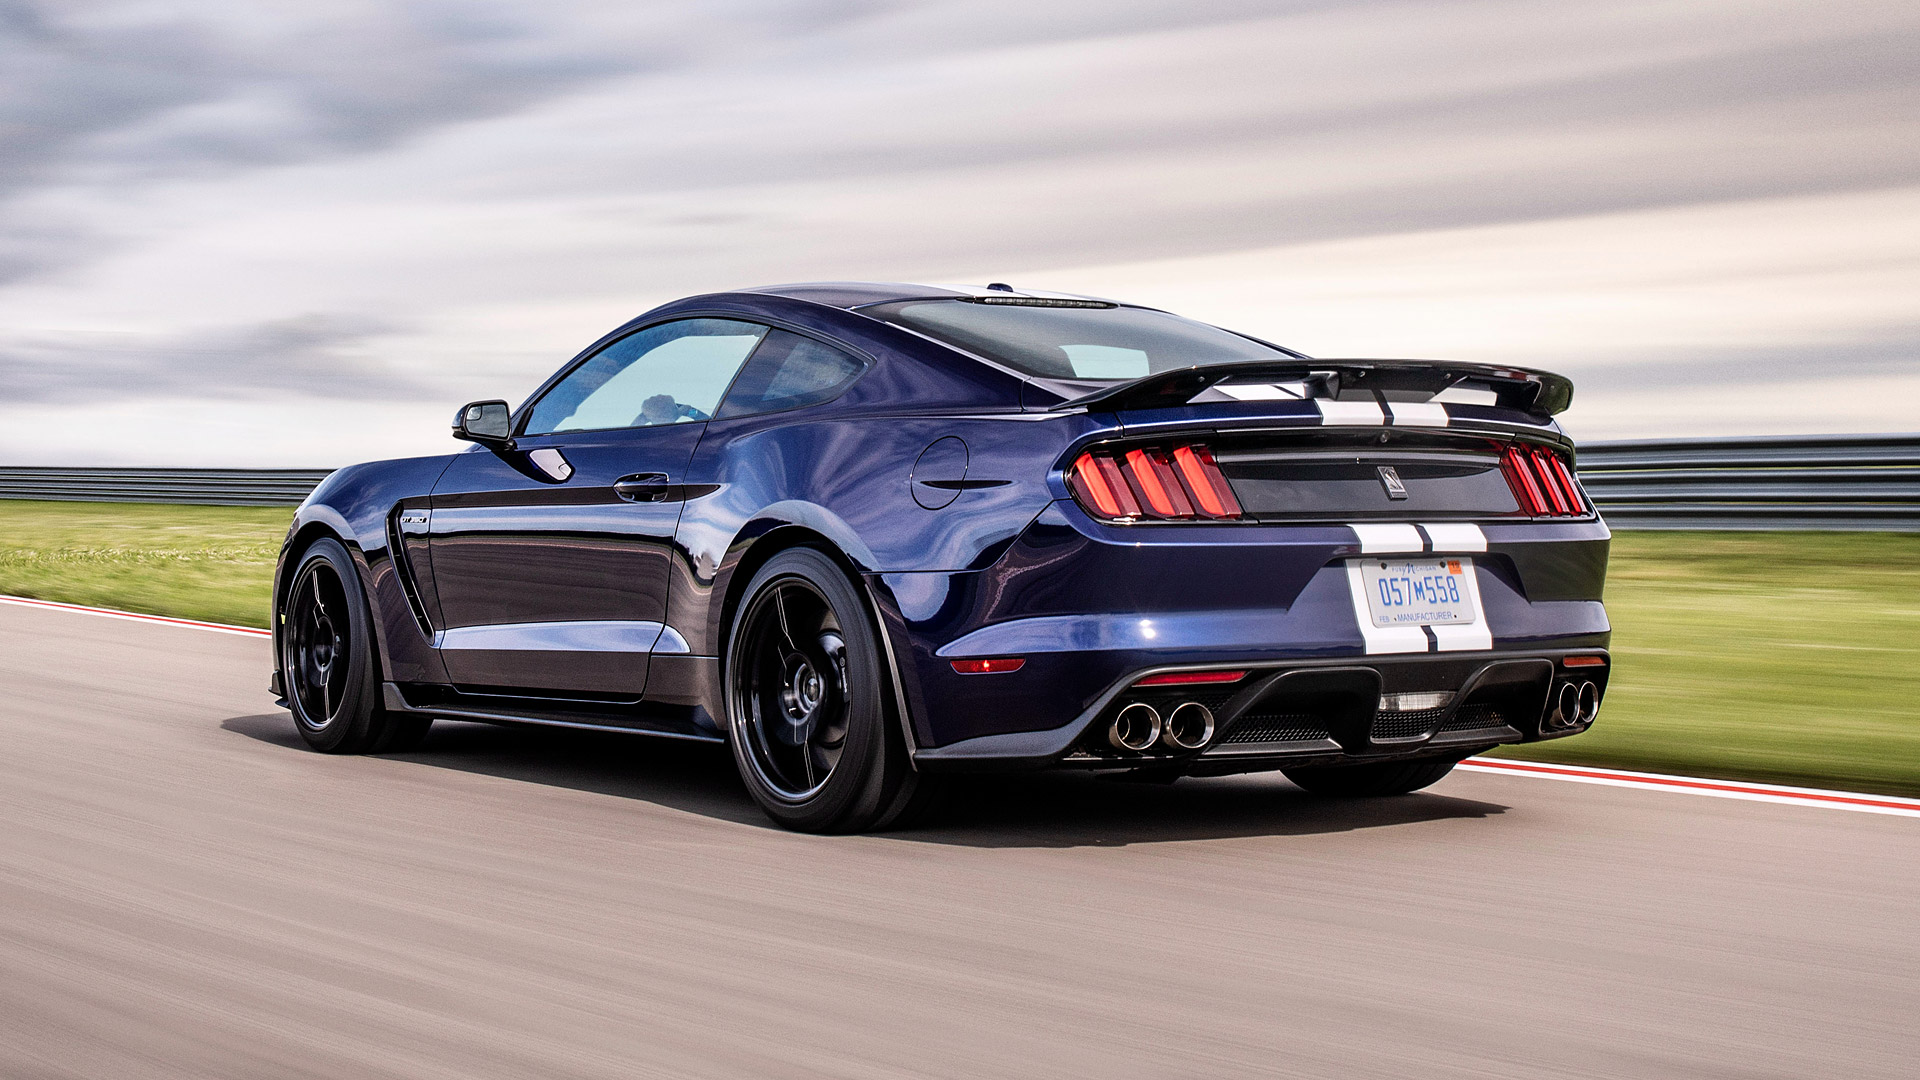 1920x1080 - Shelby Mustang GT 350 Wallpapers 32